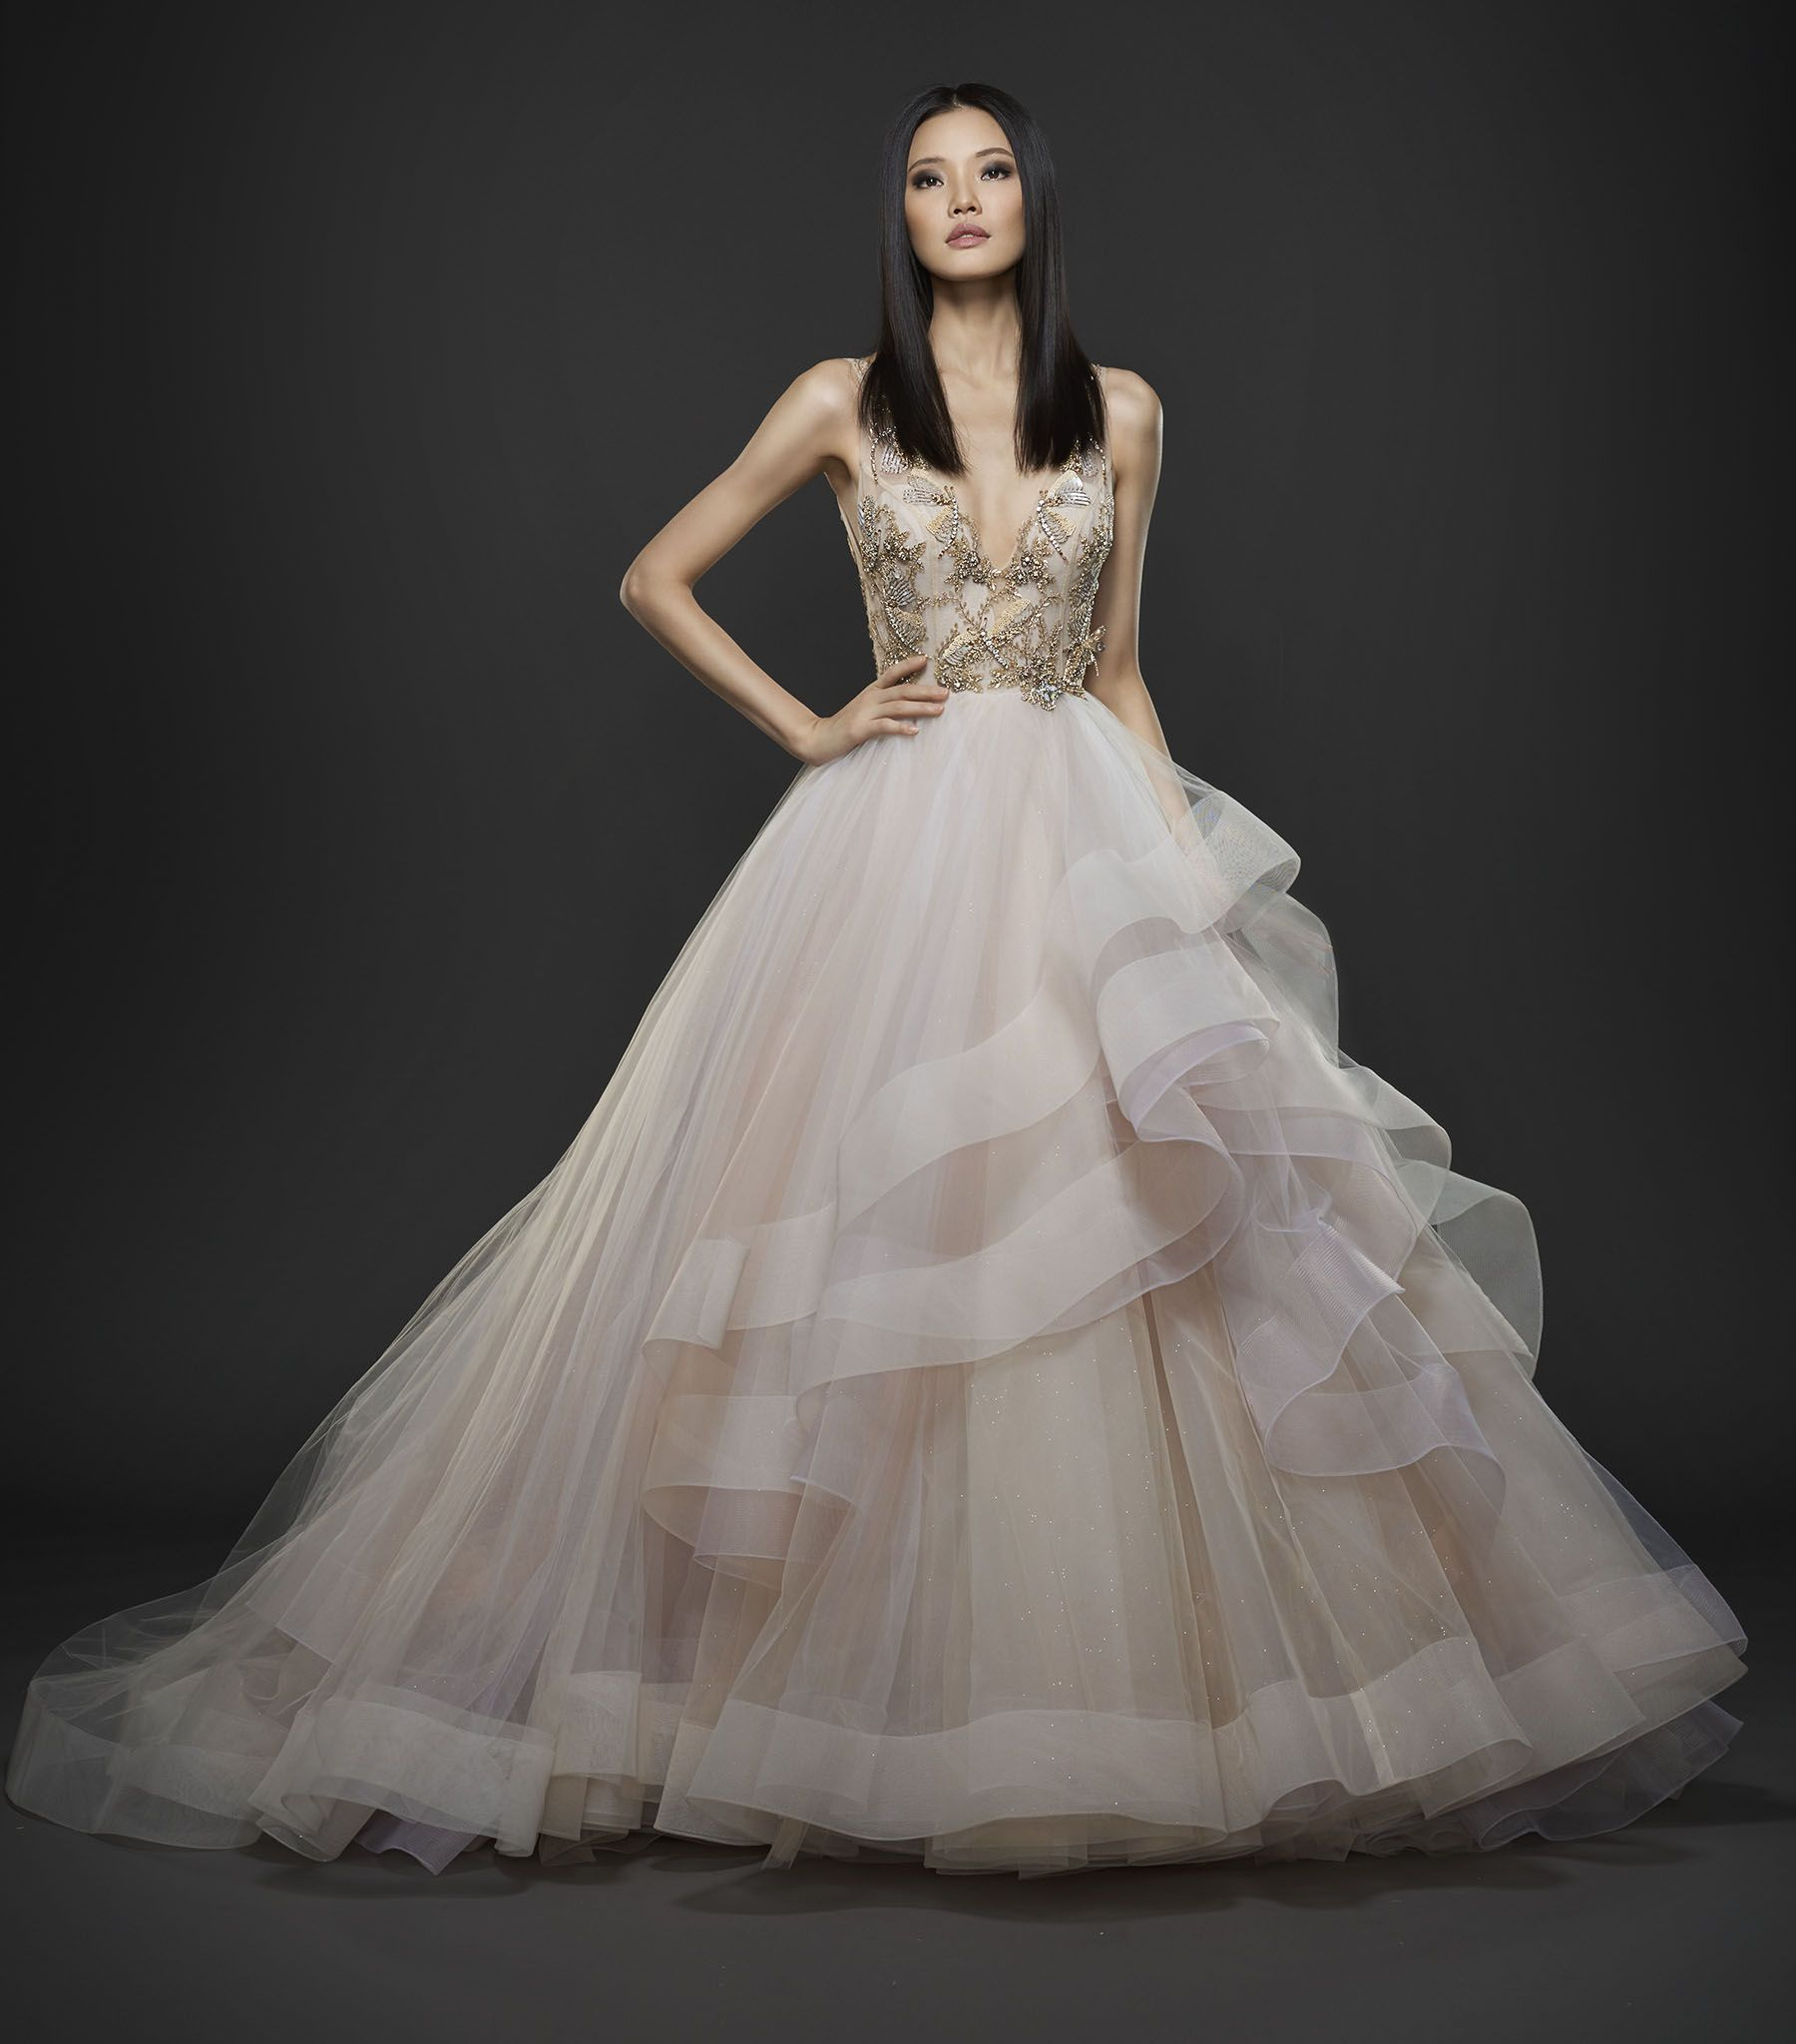 Lazaro 2018 Wedding Dress Available At Esposa Prive Stores In